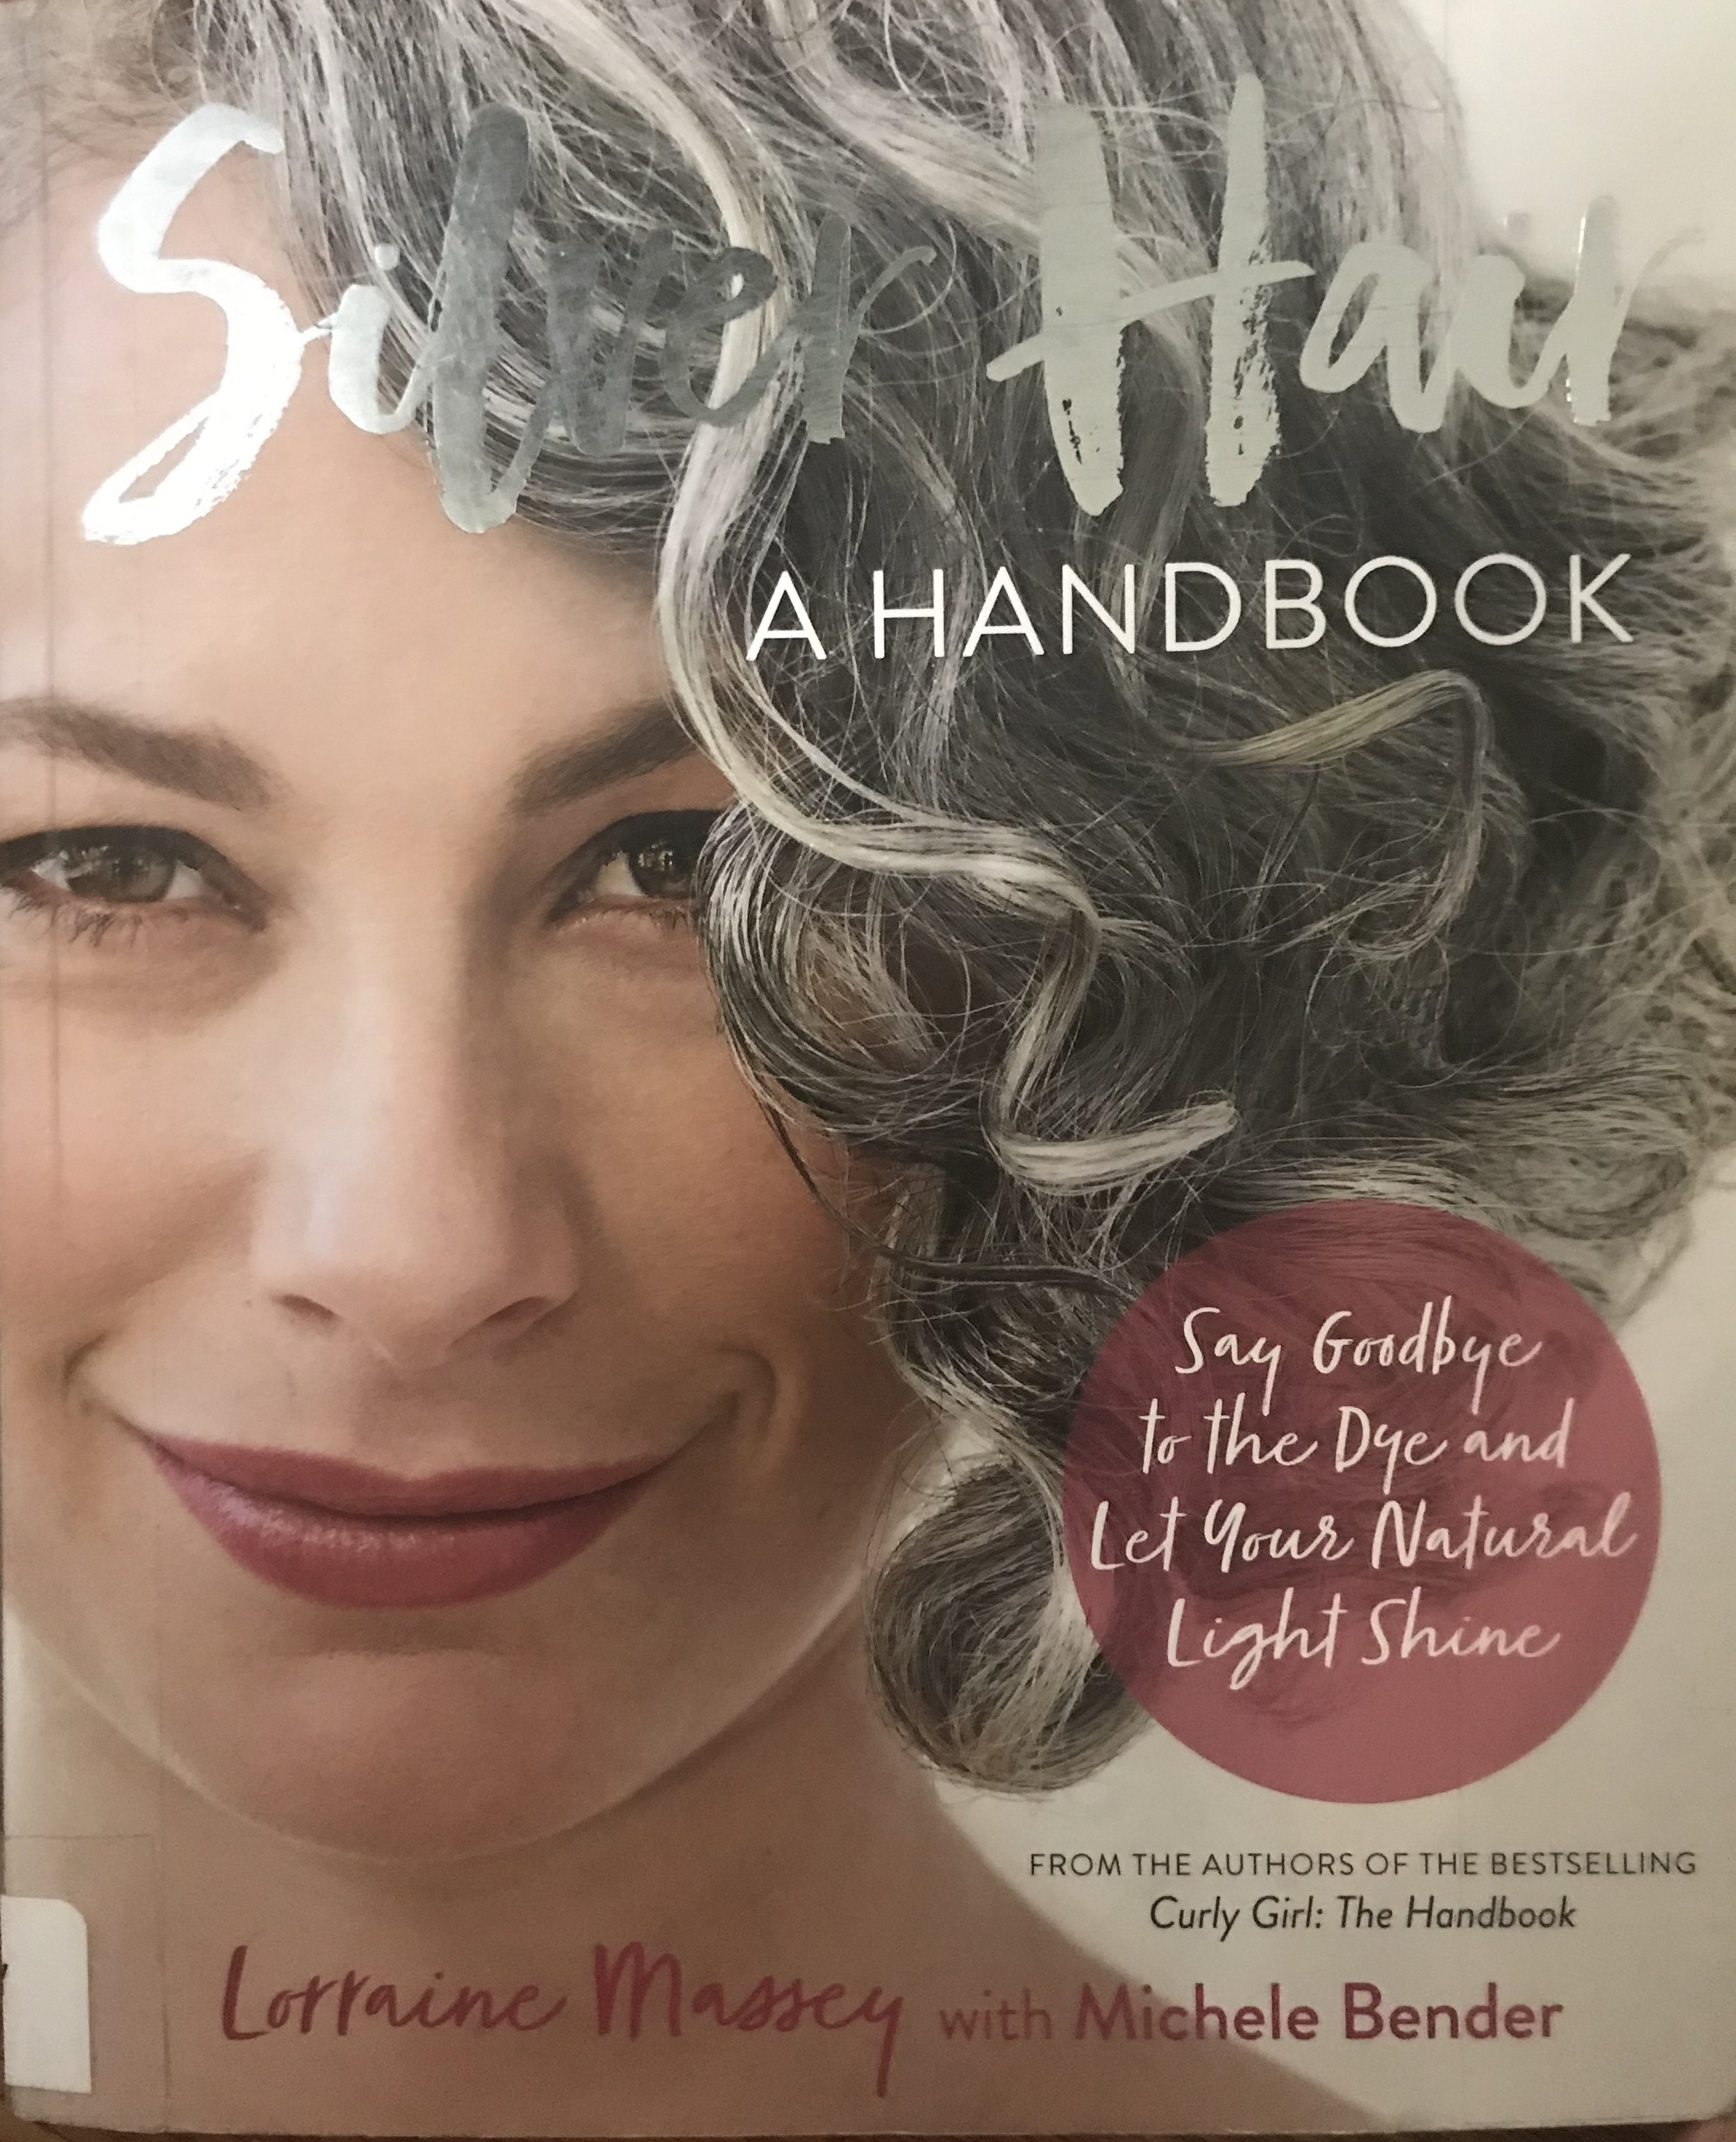 This is another incredible book from the Curly Girl Queen Lorraine Massey. She has managed to yet again help women to feel their very best while being their most natural selves. I love that! If you need inspiration to ditch the dye and want to know how you can get through it, this is the book for you.